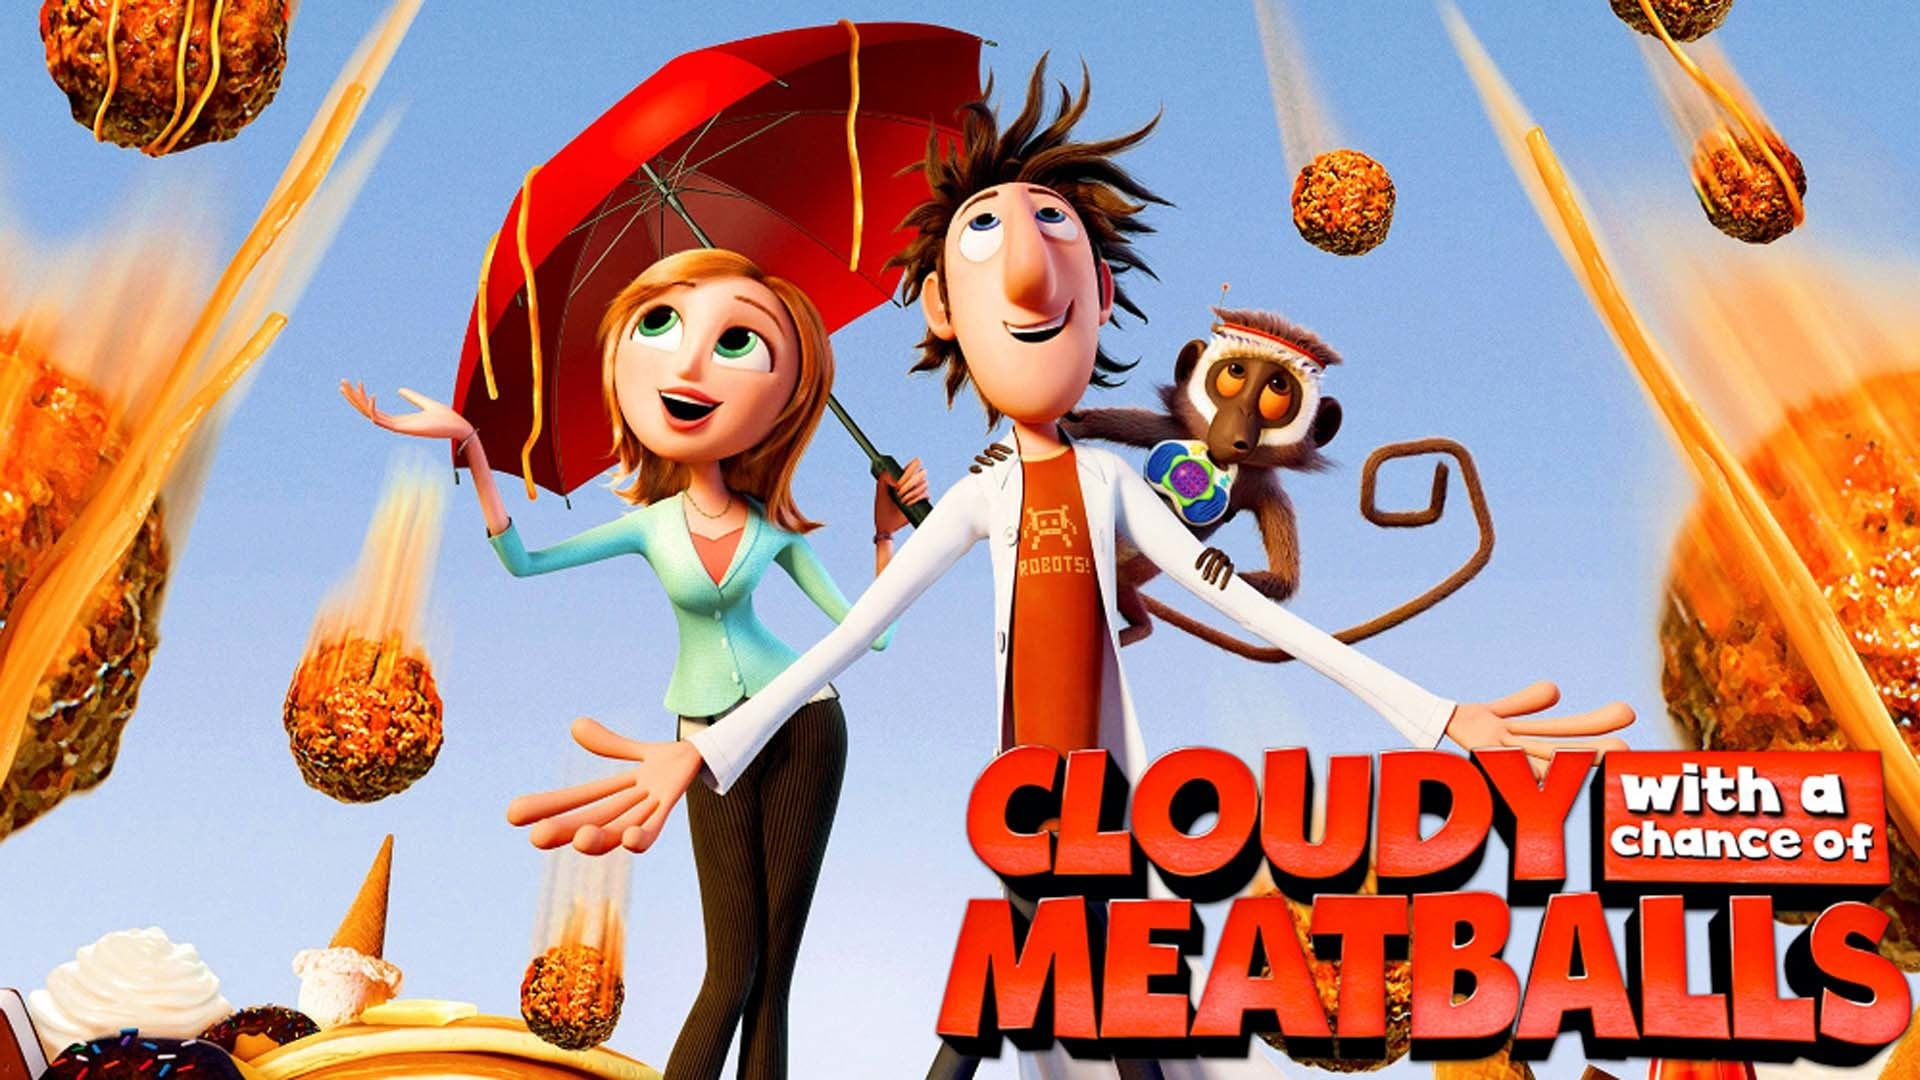 Cloudy with a Chance of Meatballs (PG)